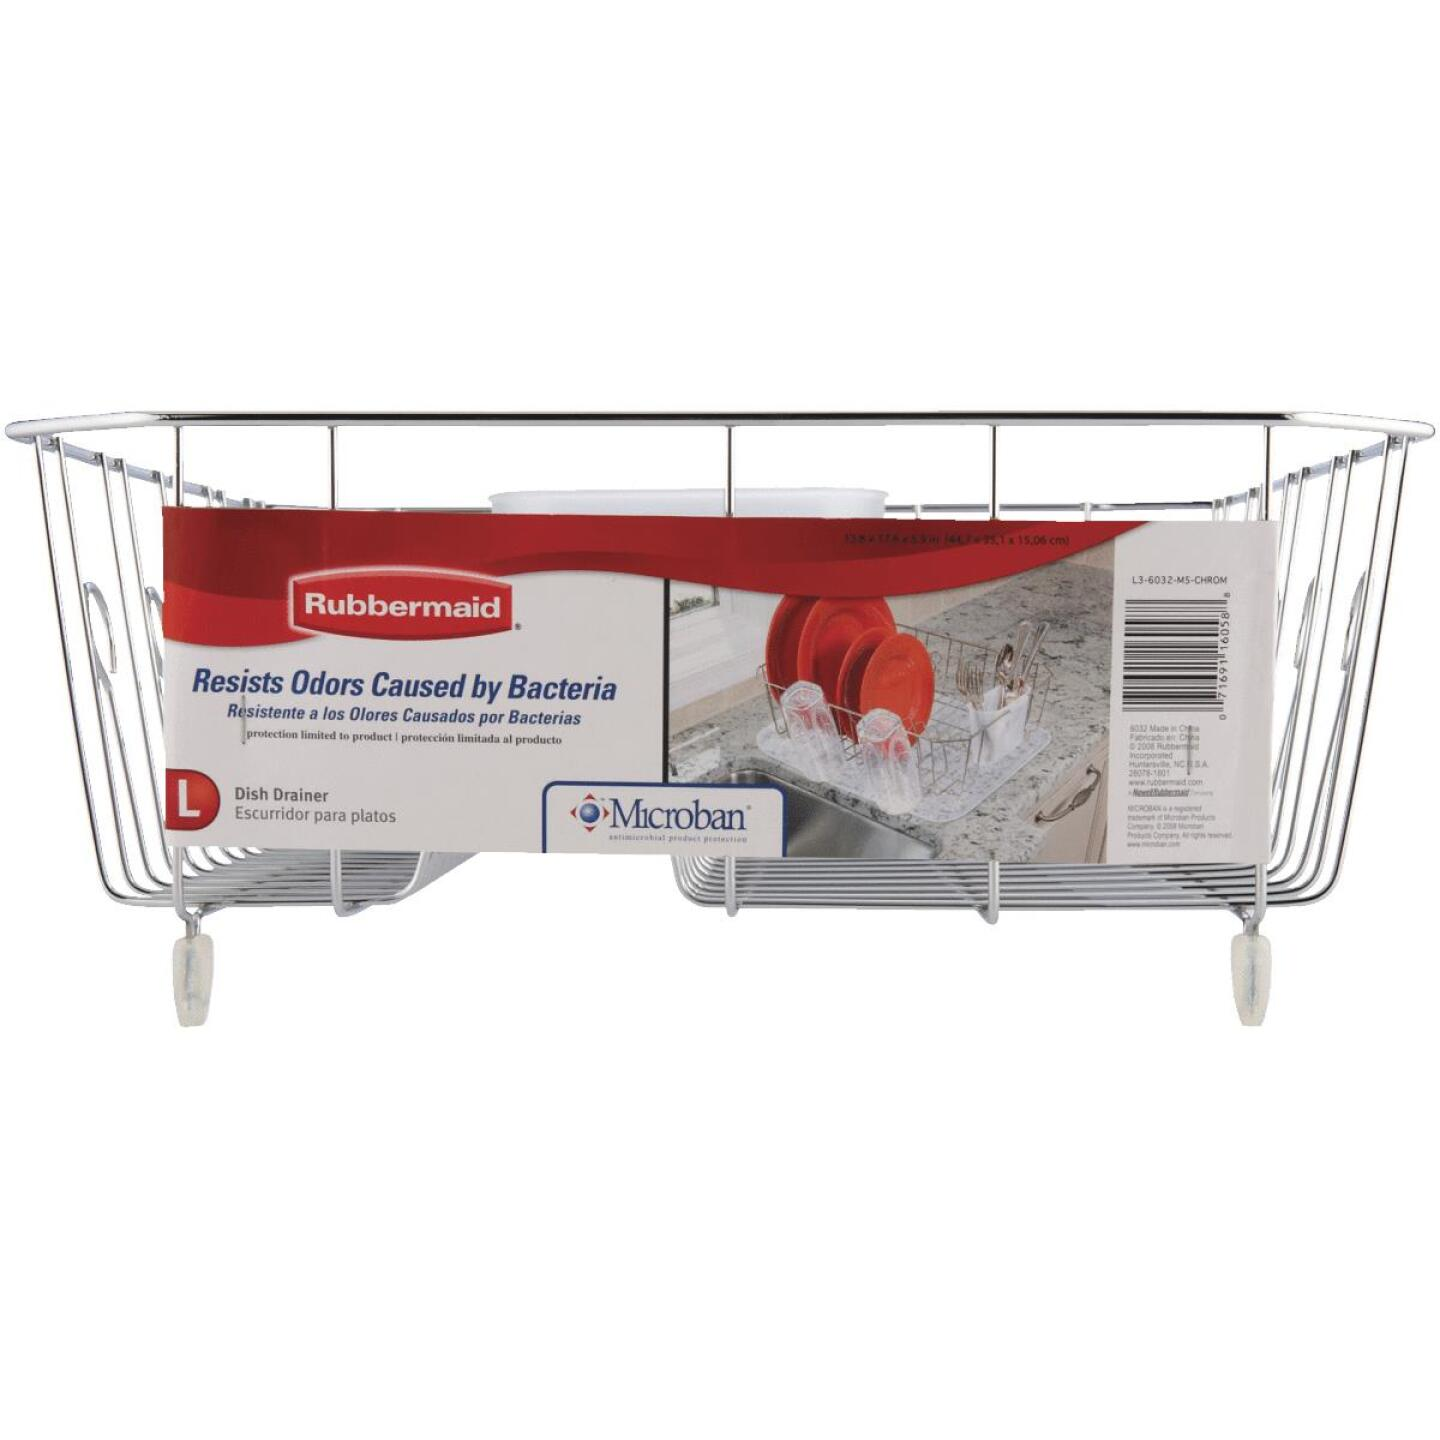 Rubbermaid 13.81 In. x 17.62 In. Chrome Wire Sink Dish Drainer Image 3